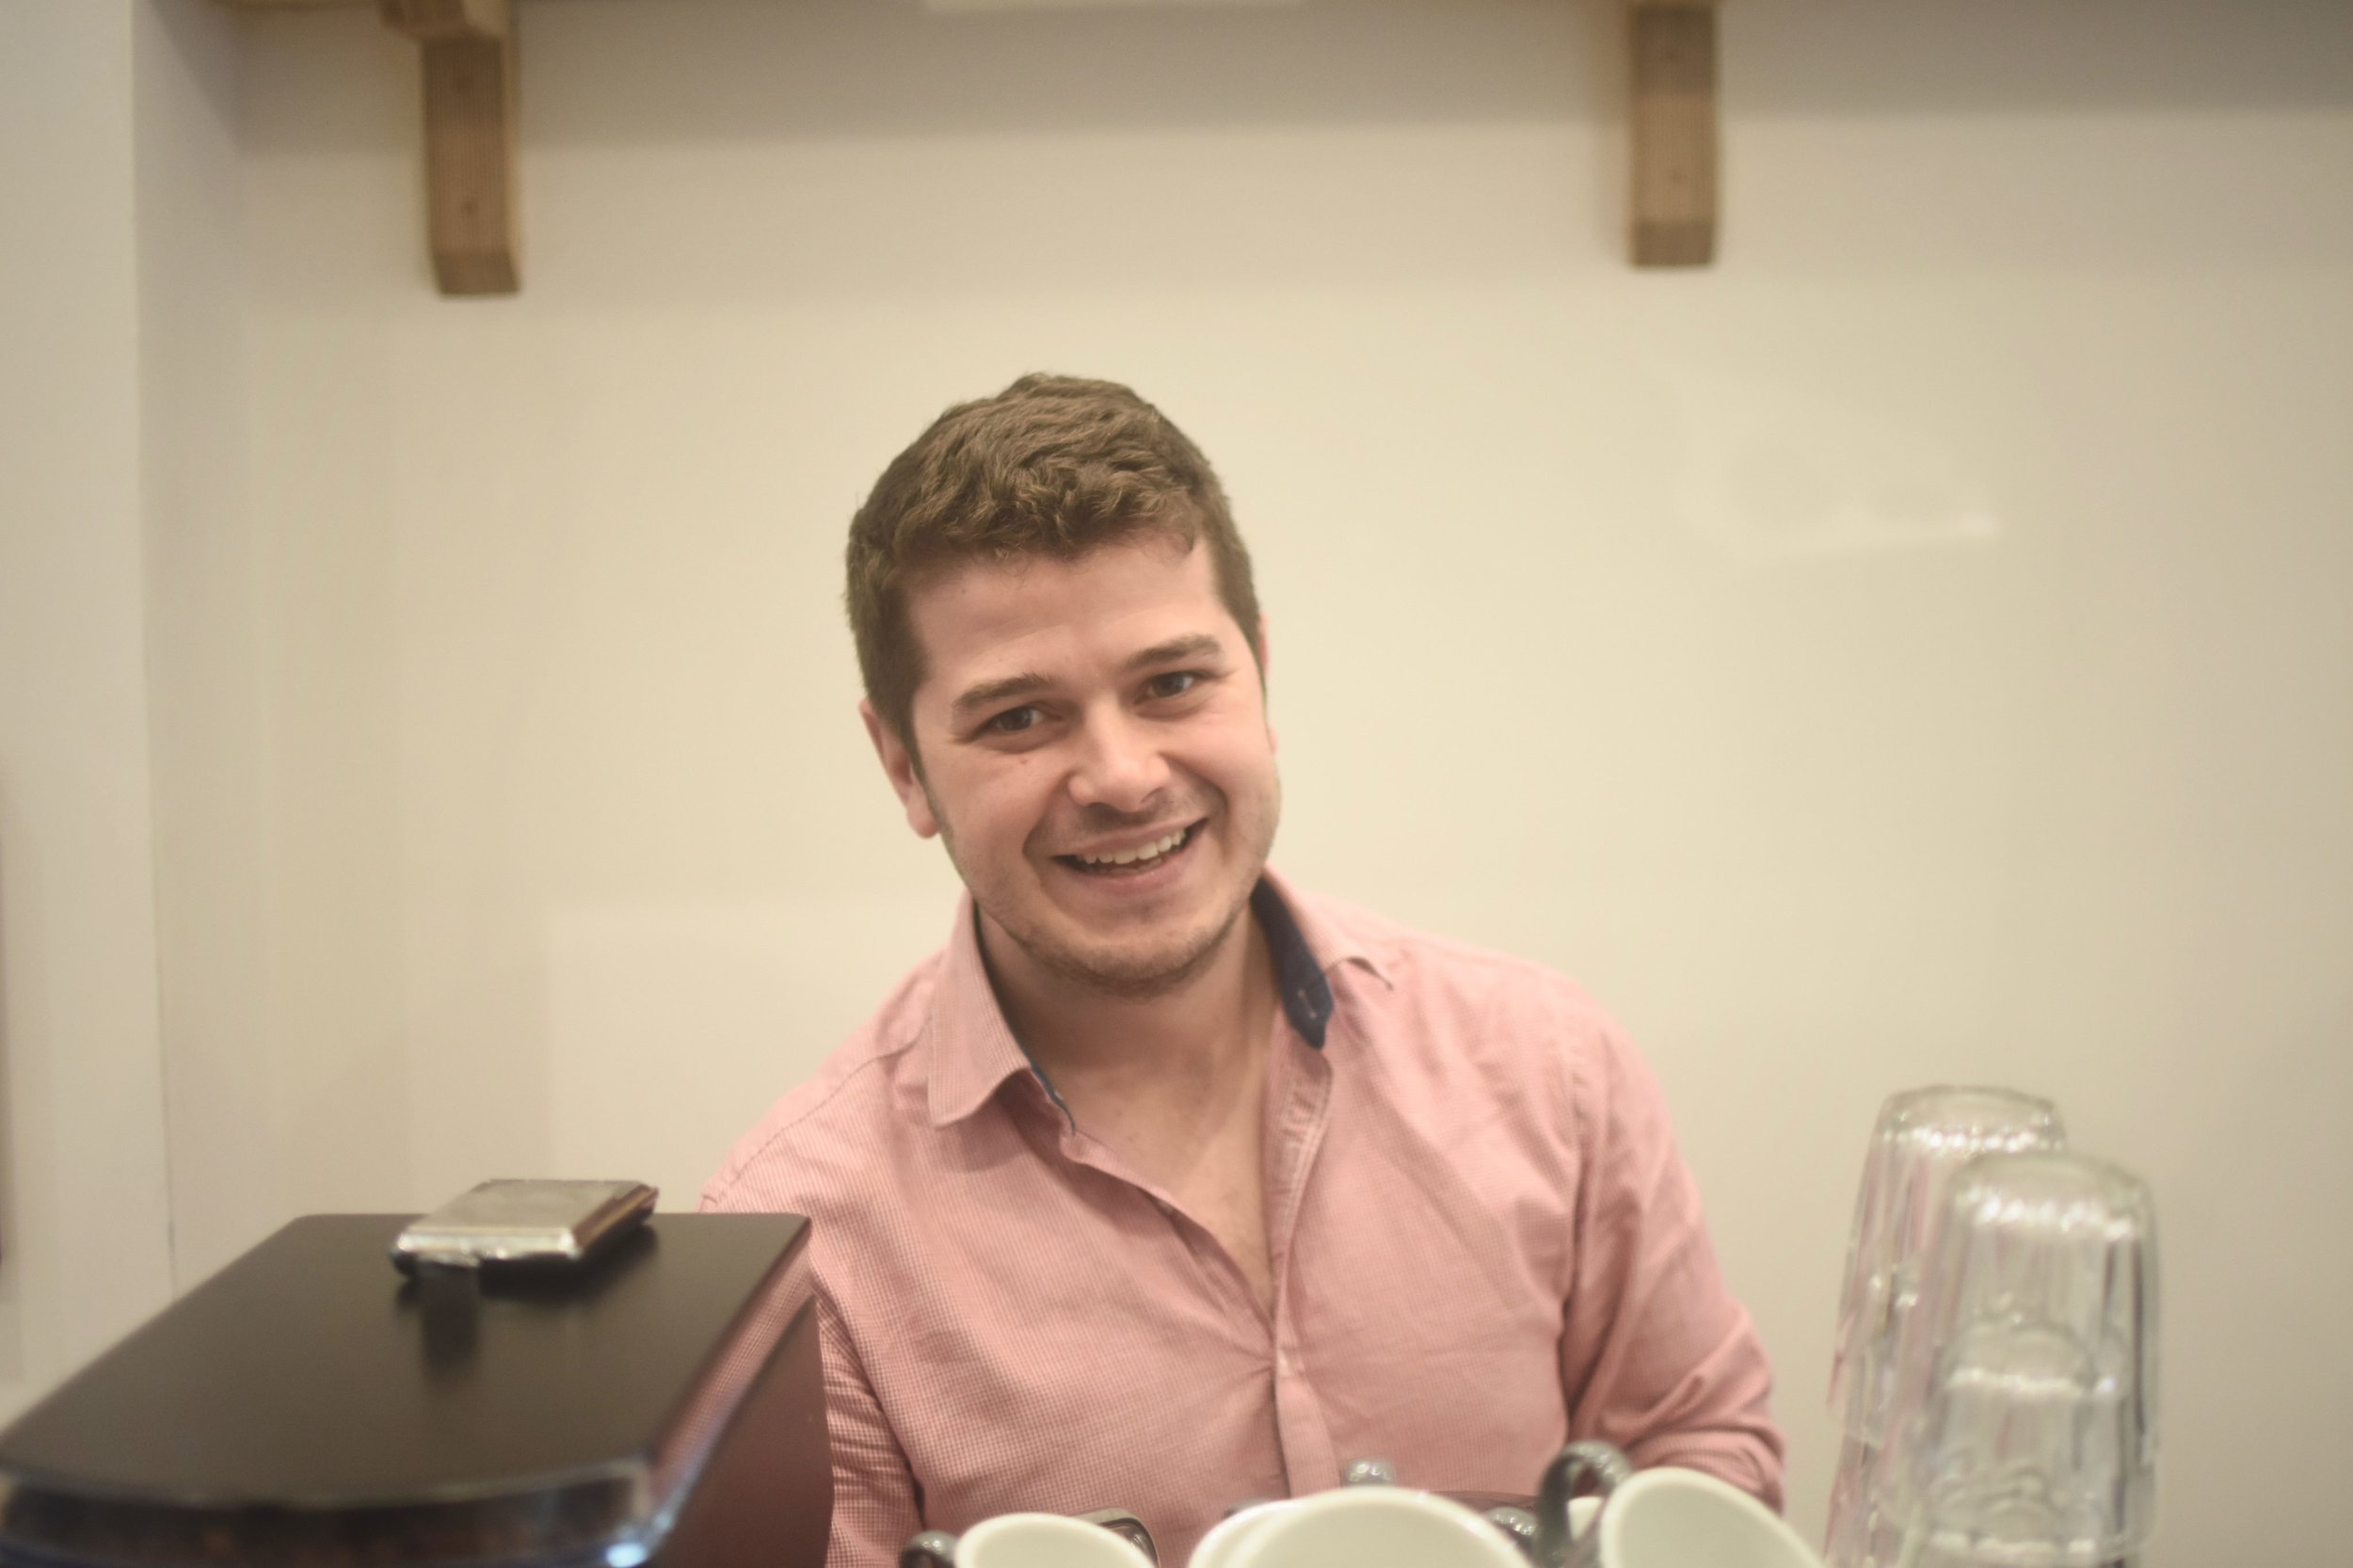 Dan Williams, Coffee connoisseur + Beer lover